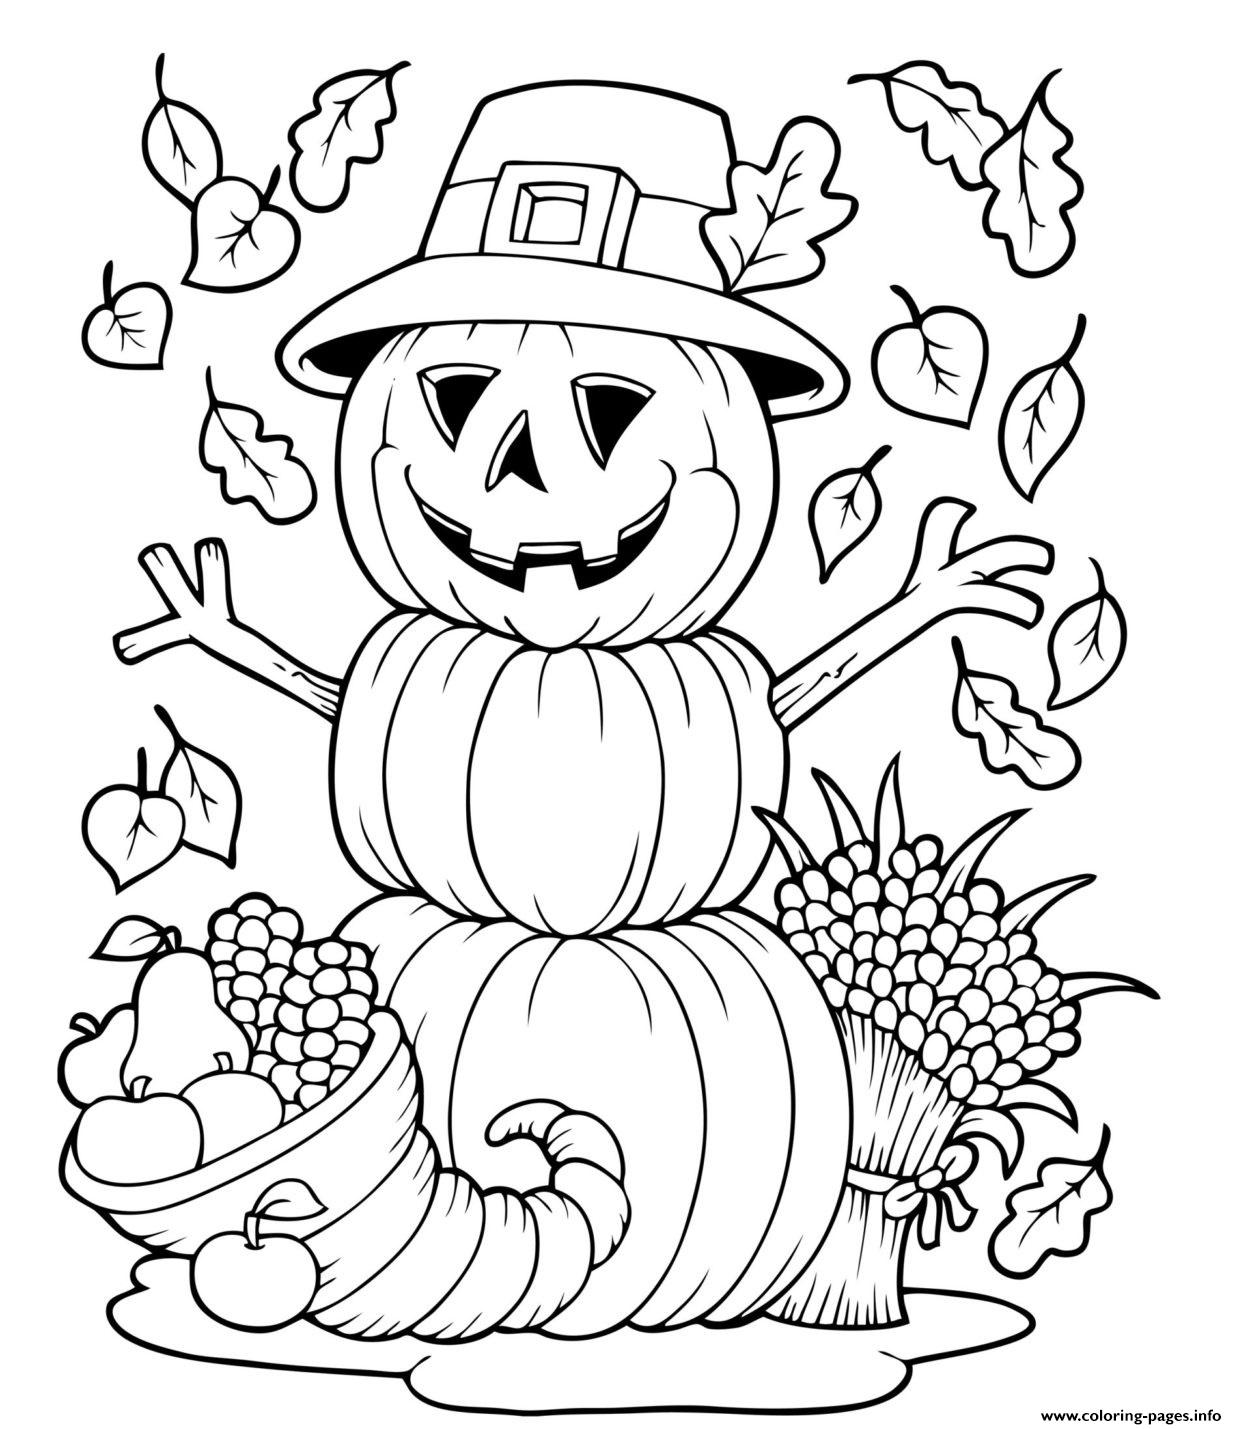 halloween pumpkin pictures to print and color creatively christy halloween craft 4 halloween coloring to pumpkin halloween color and print pictures